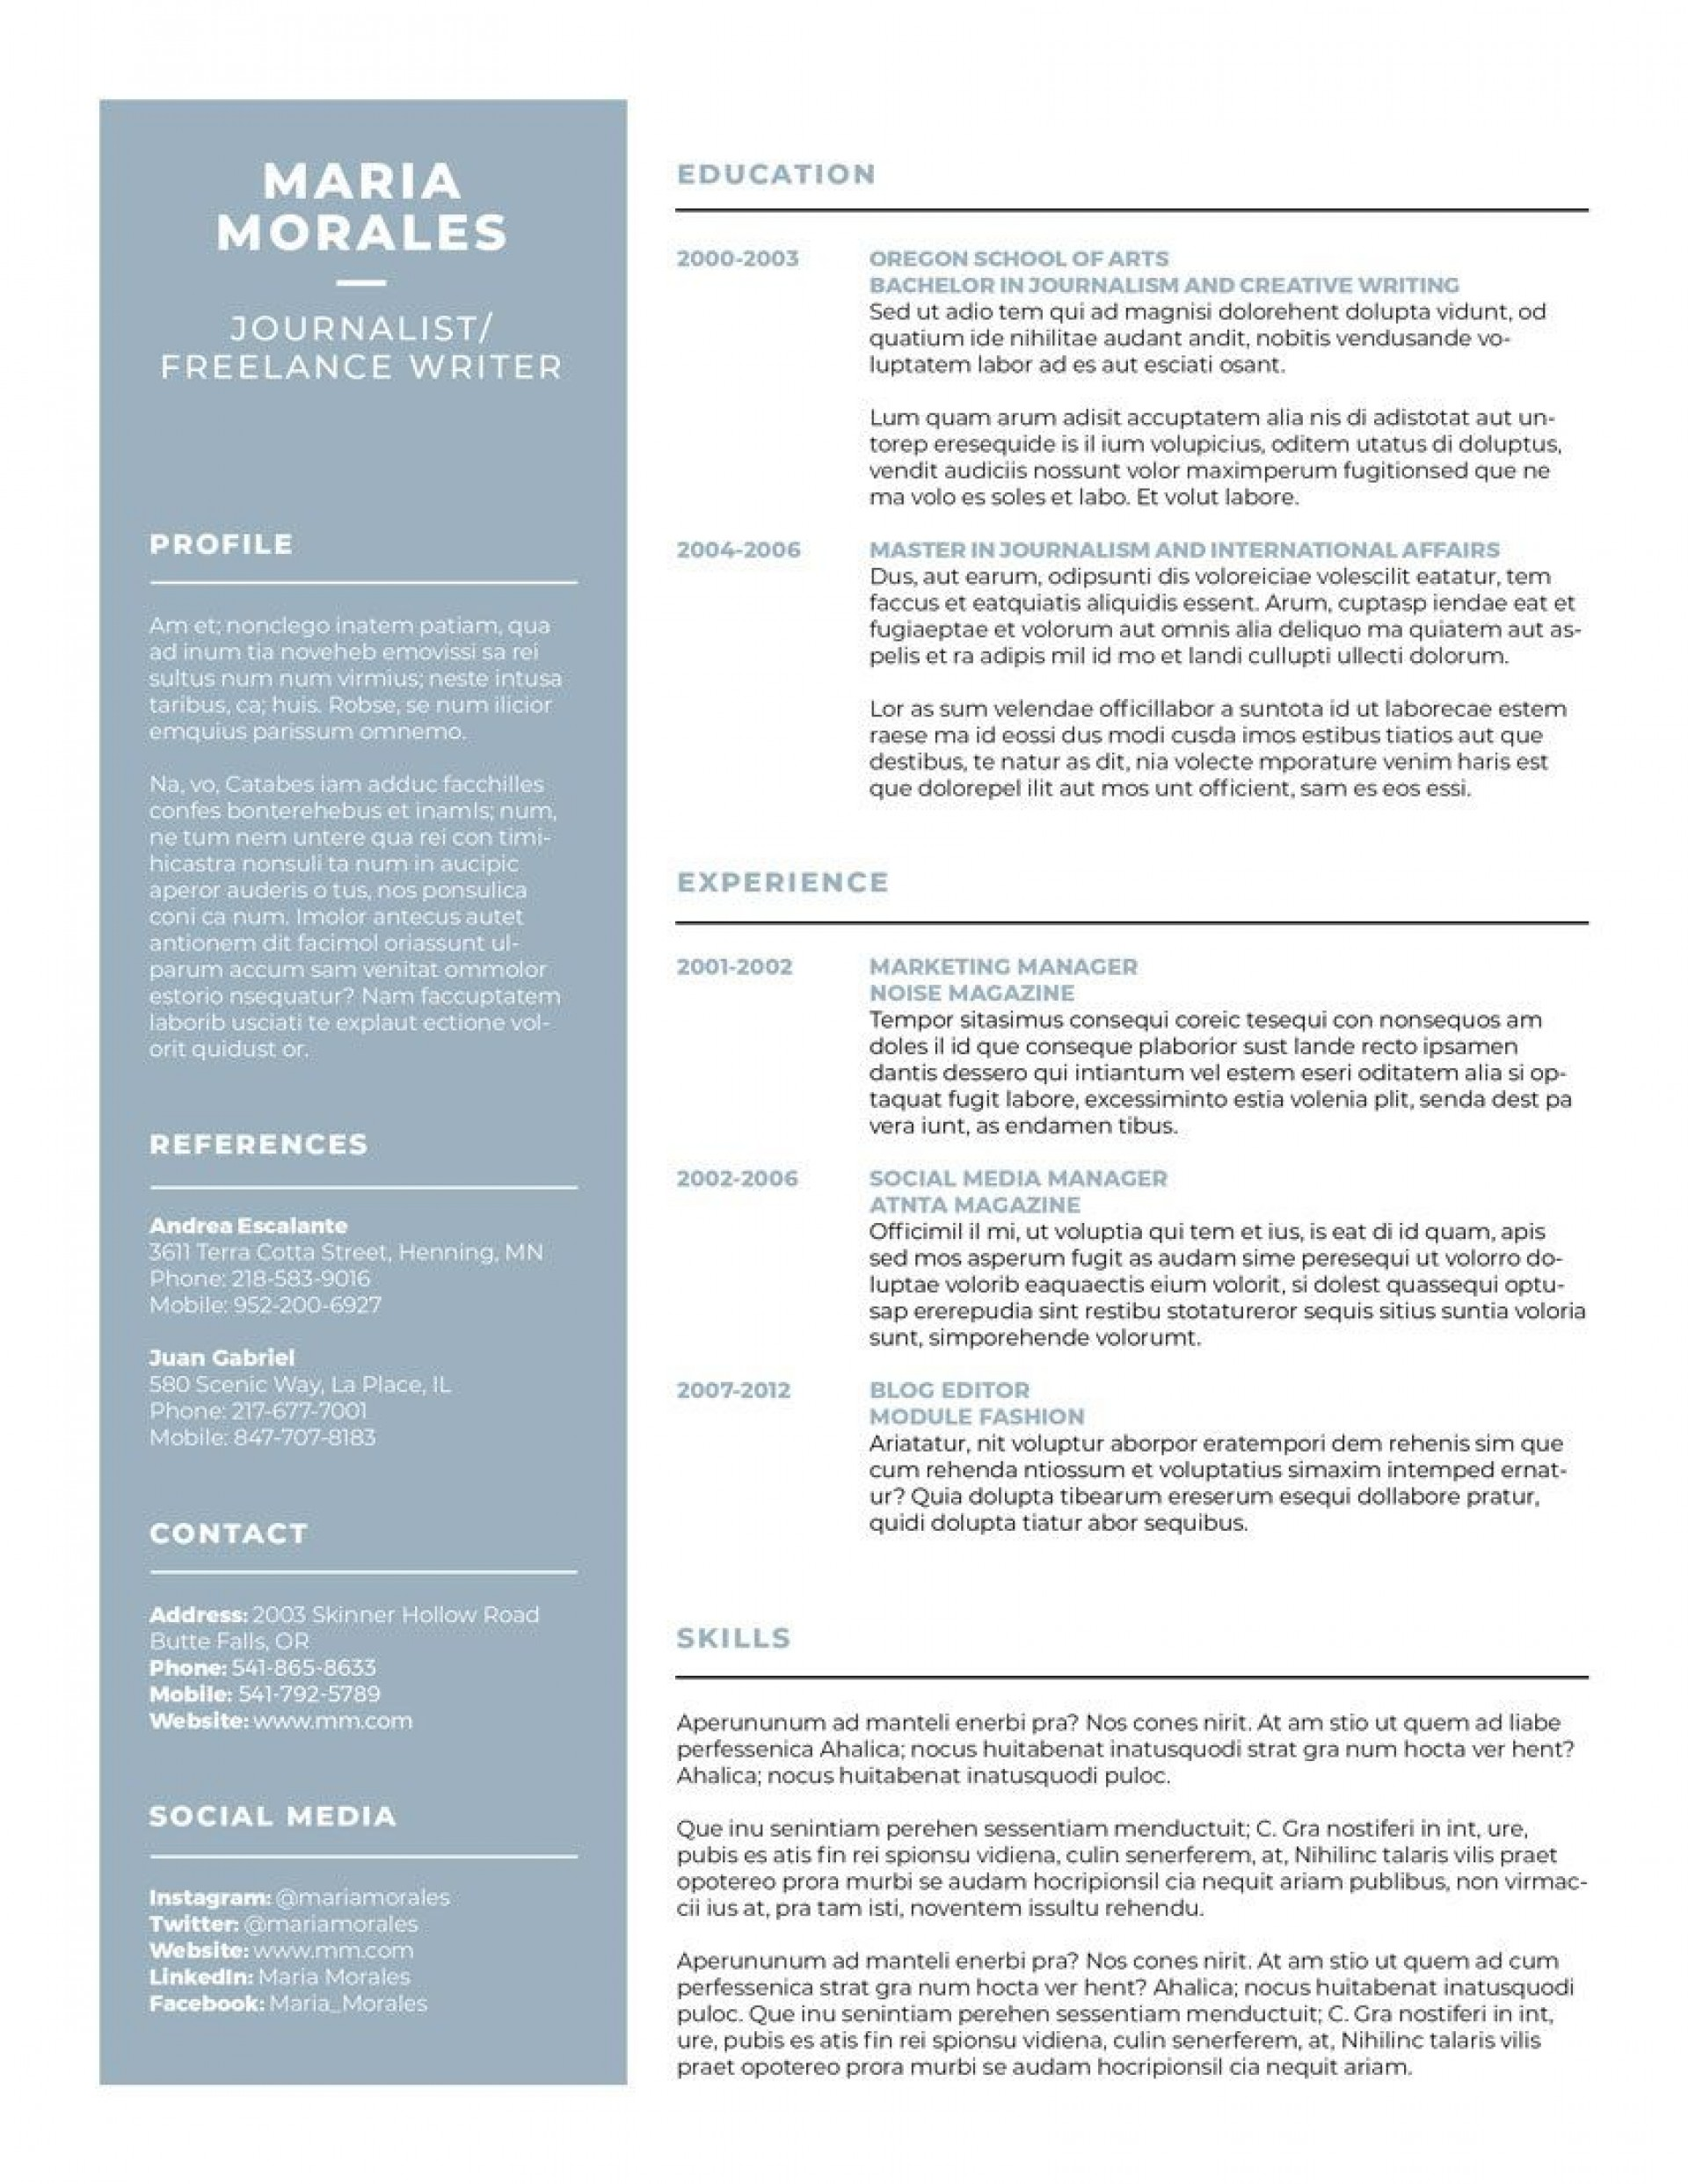 008 Awful Make A Resume Template Free High Resolution  Create Your Own How To Write1920